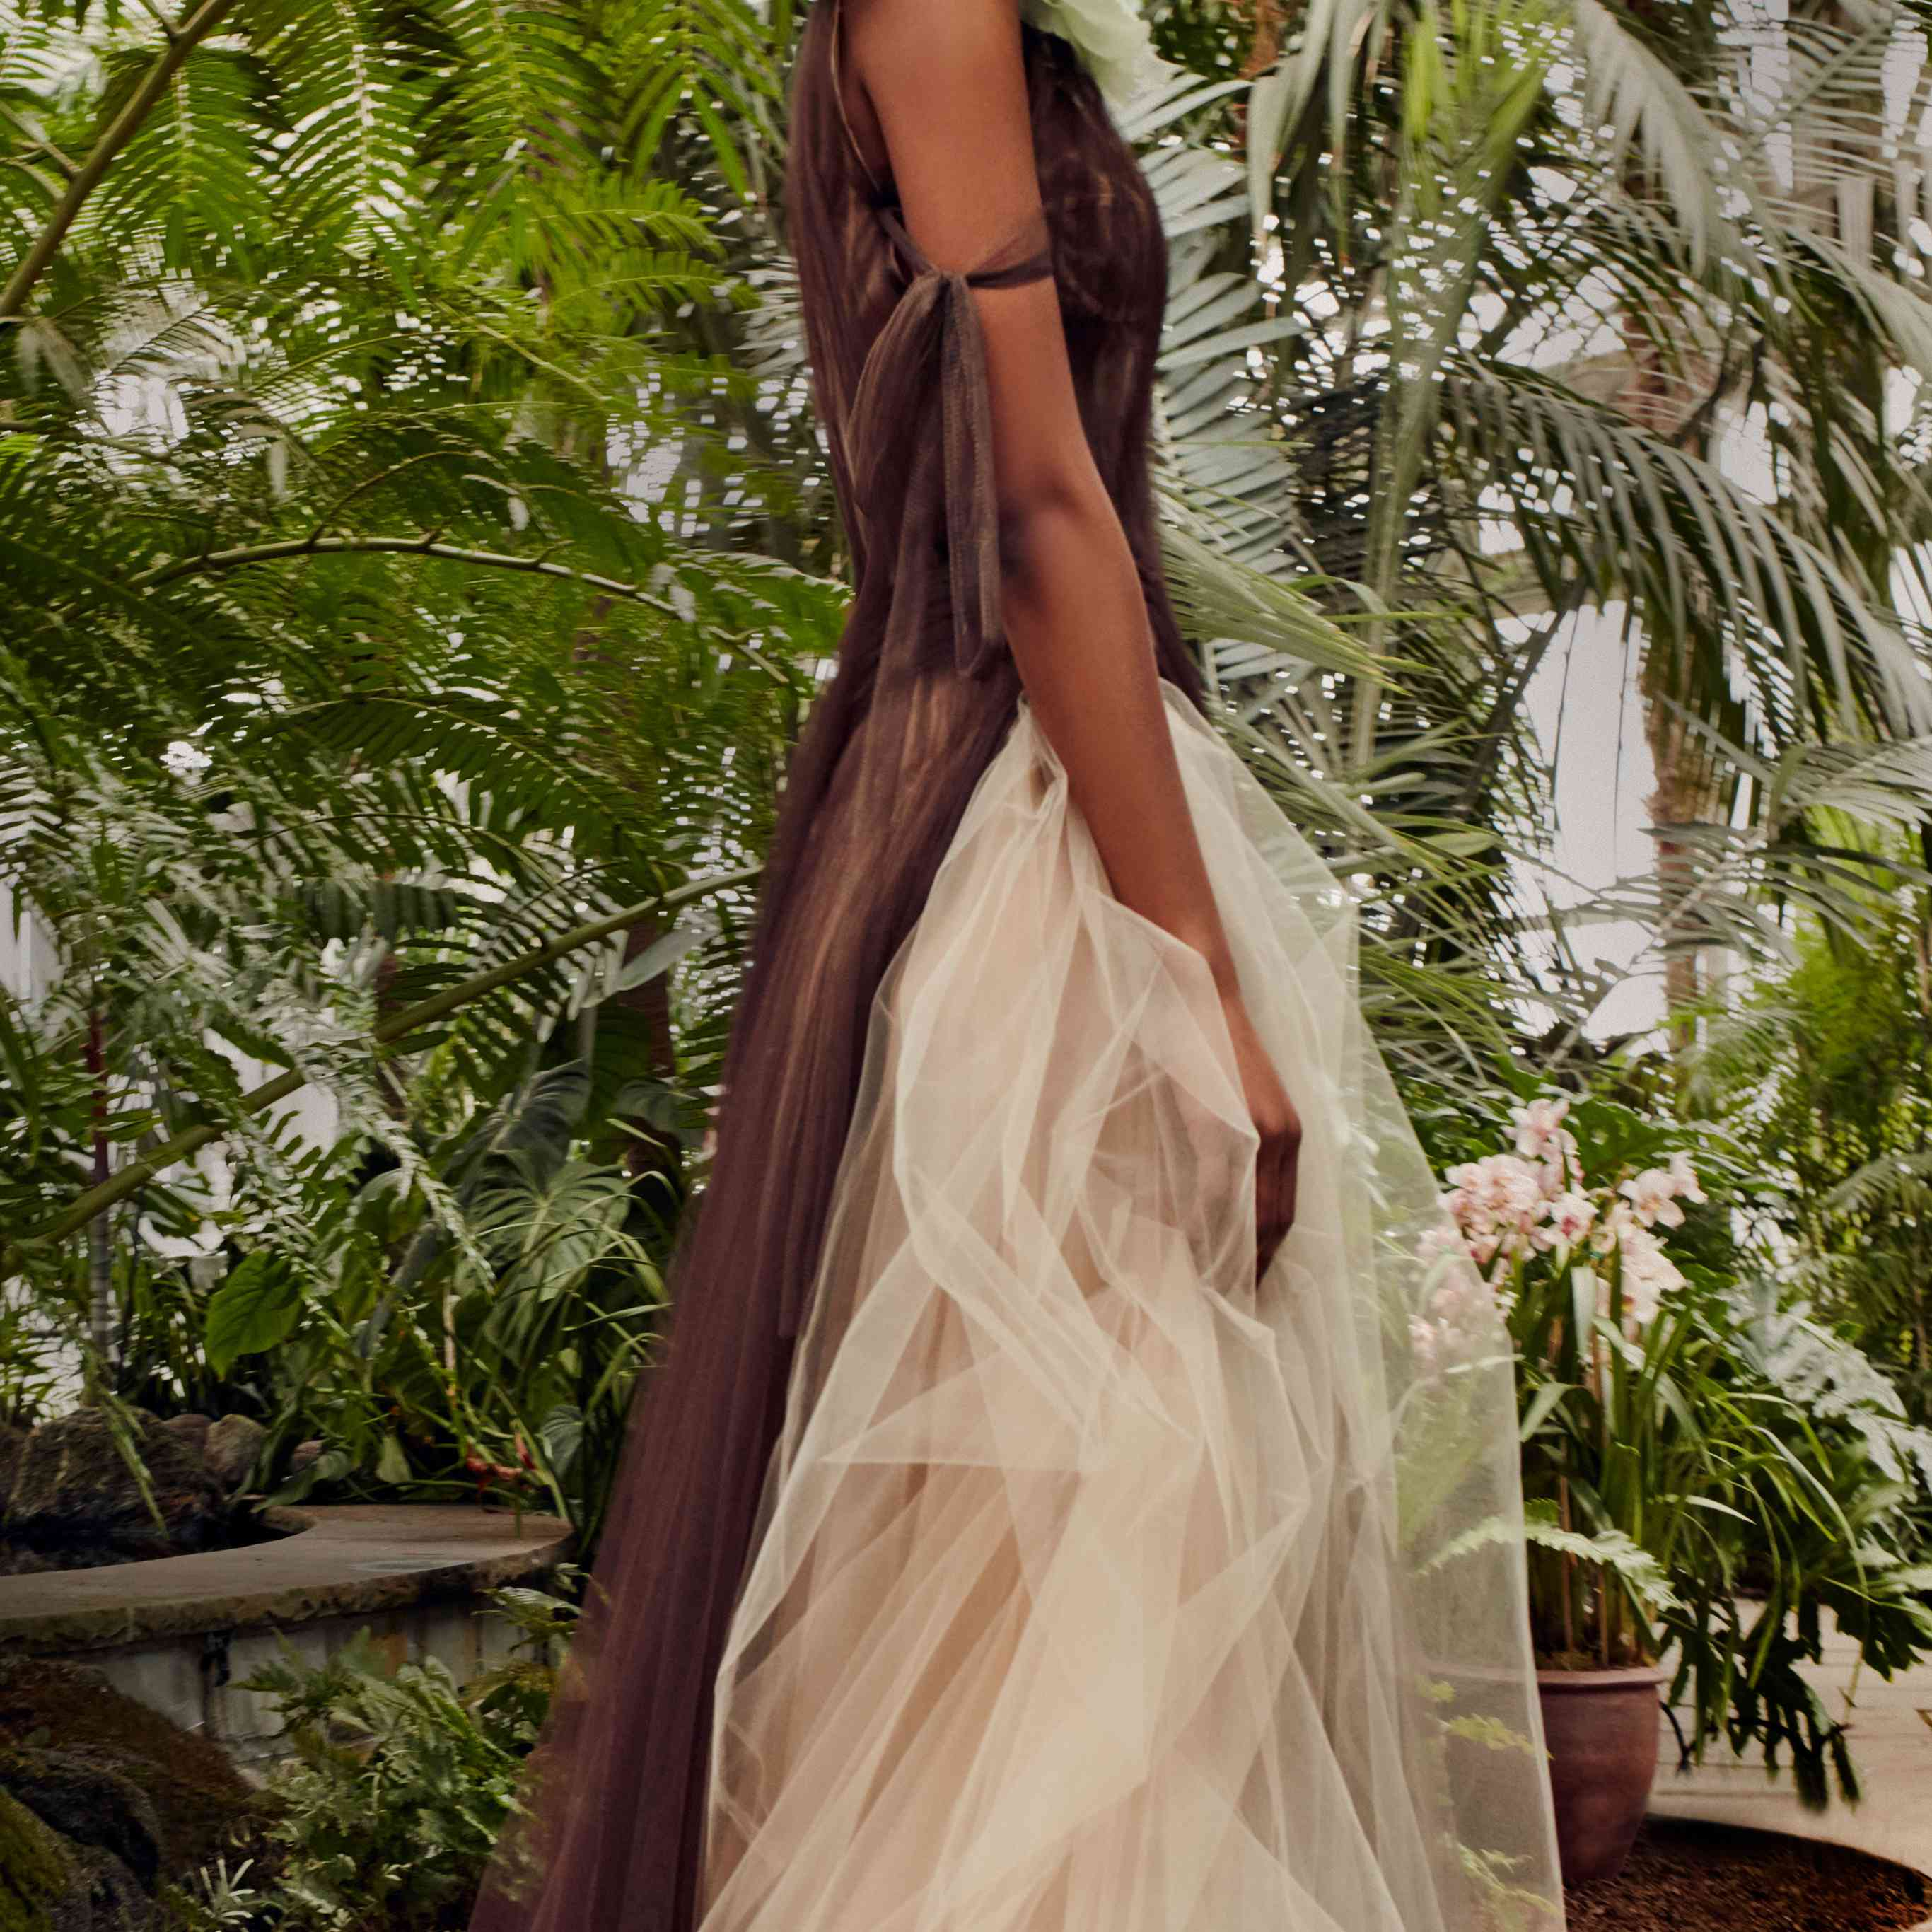 Model in a brown dress with a tulle nude exposed underskirt and a light green flower accent at the shoulder